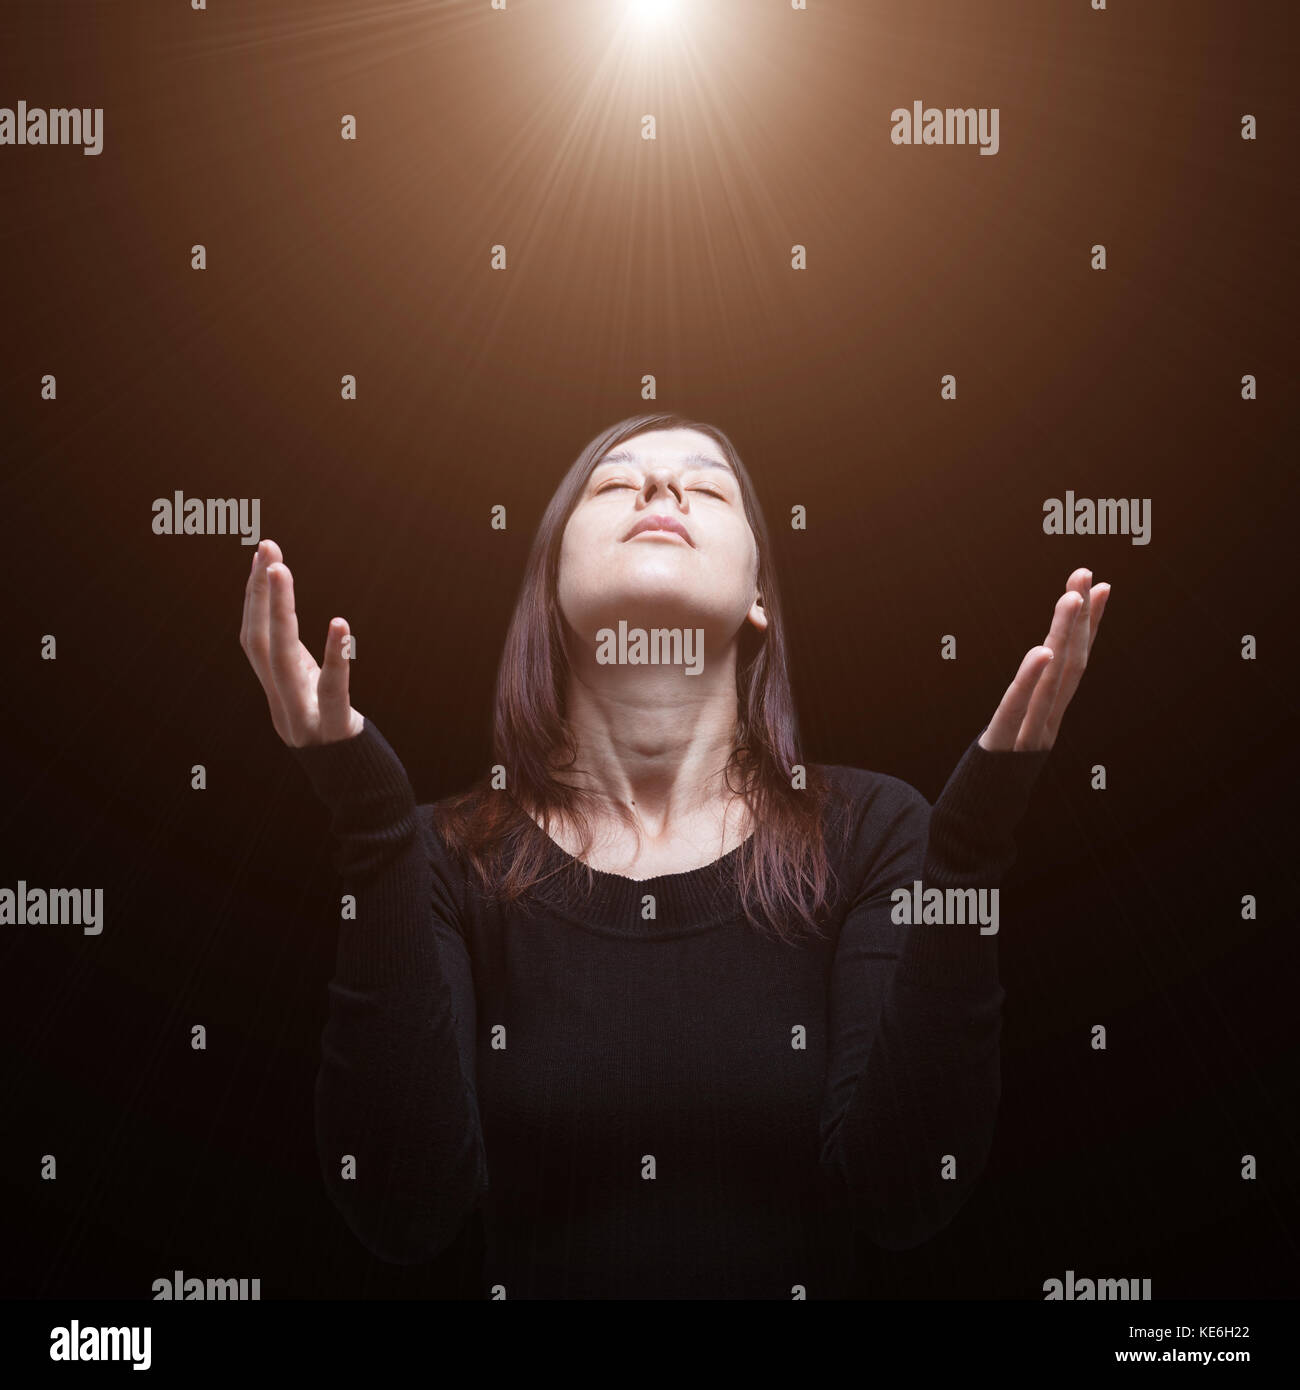 Mourning woman praying, arms outstretched in worship to god